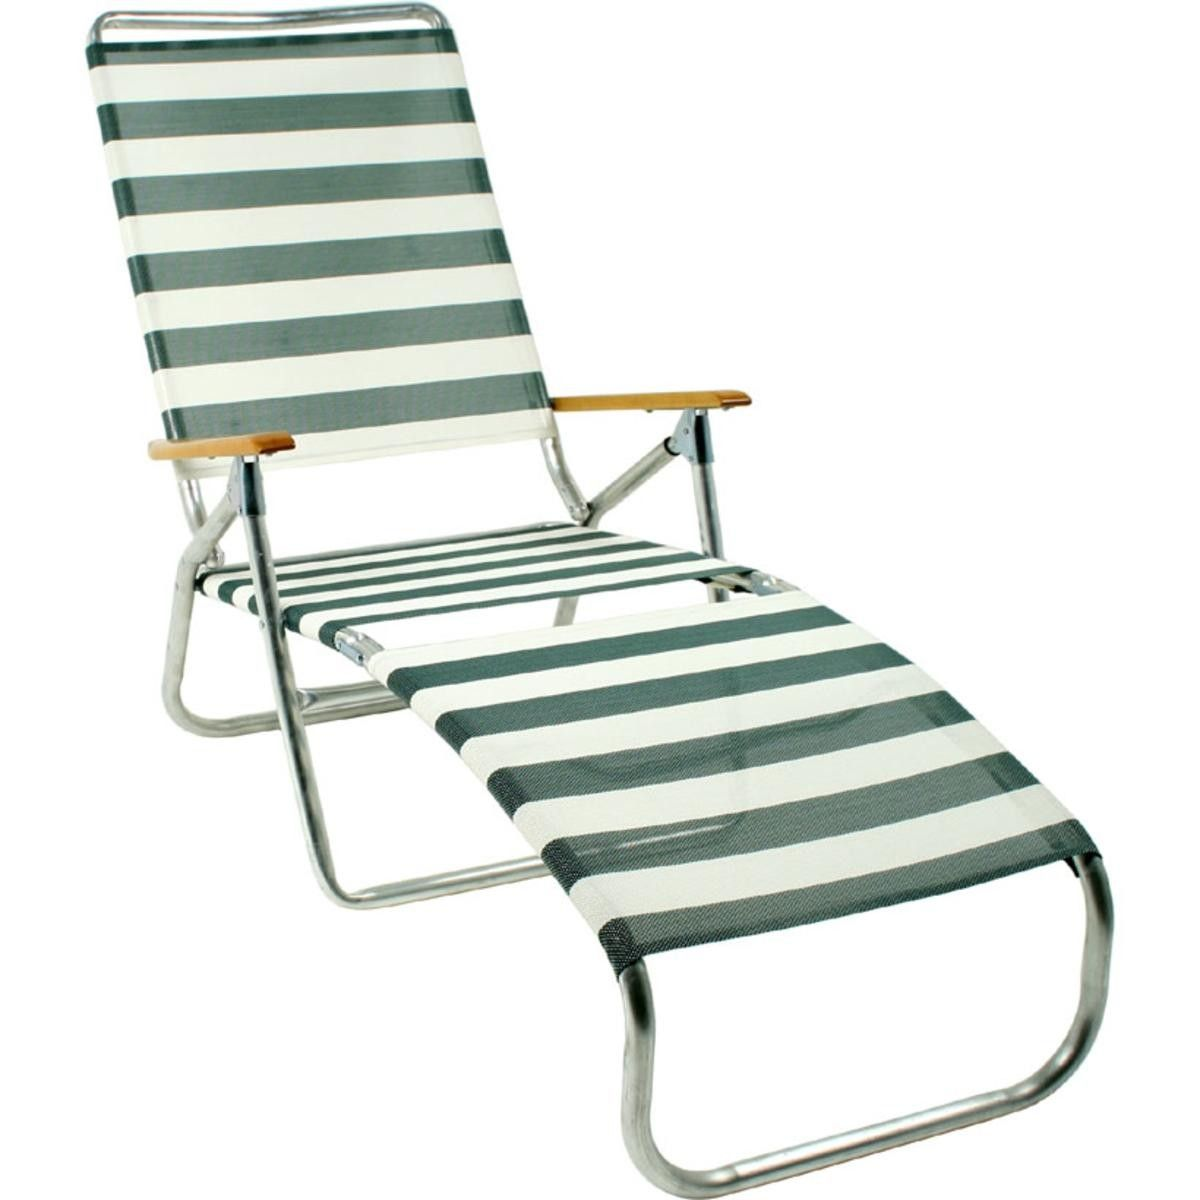 Awesome folding chaise lounge beach chair chaise lounge for Chaise lounge beach towels